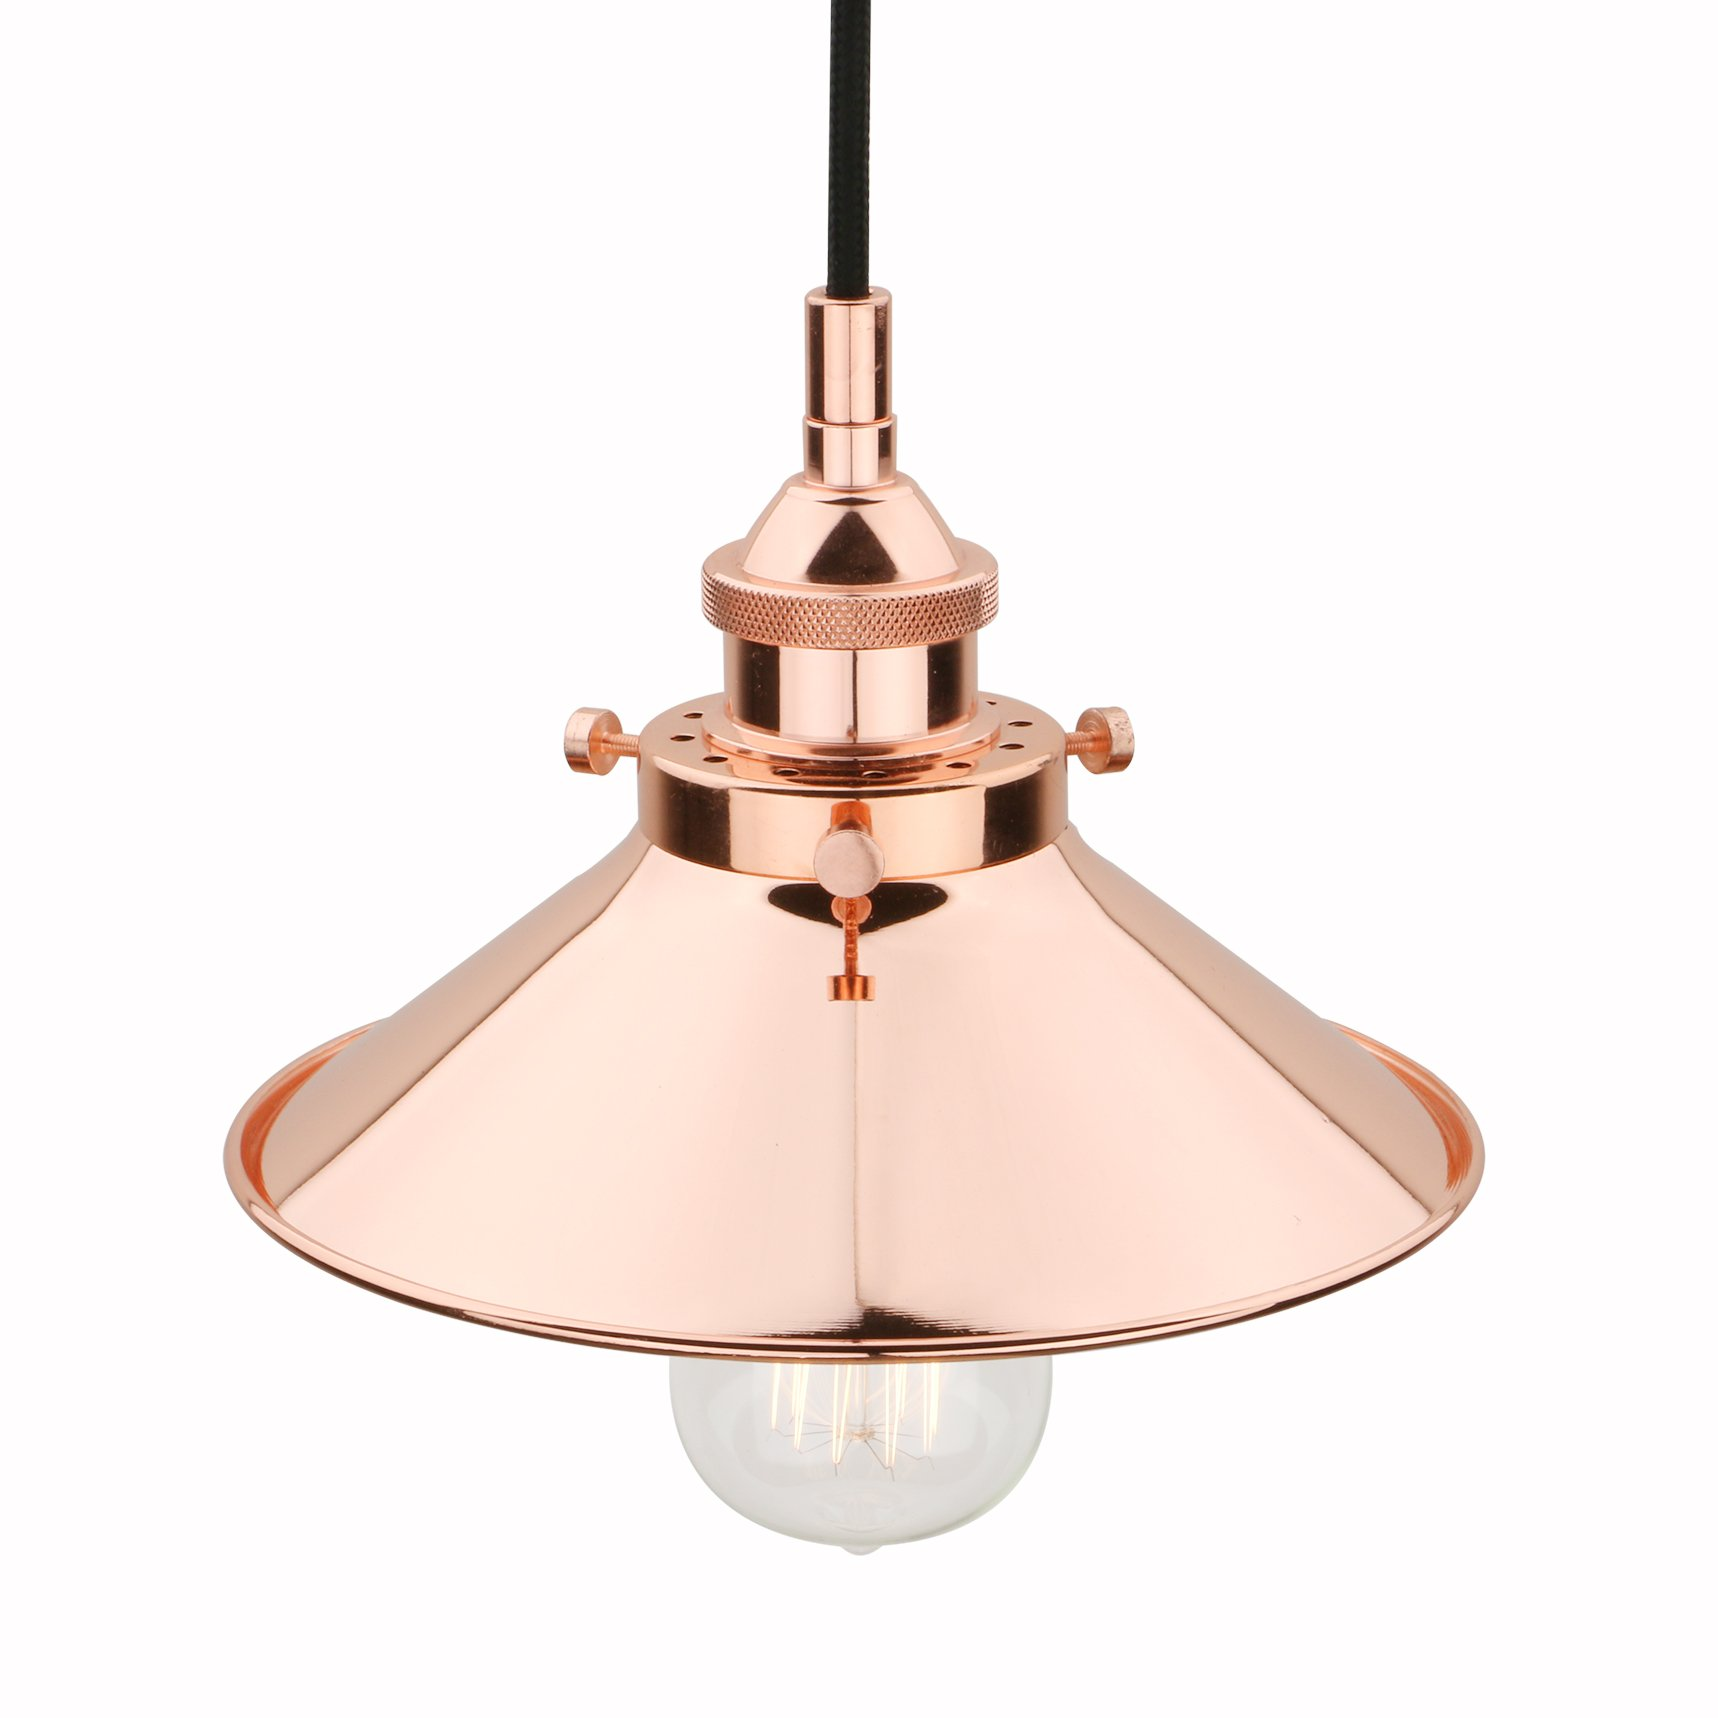 copper kitchen lights amazon co uk rh amazon co uk Copper Floor Lamp copper kitchen heat lamps